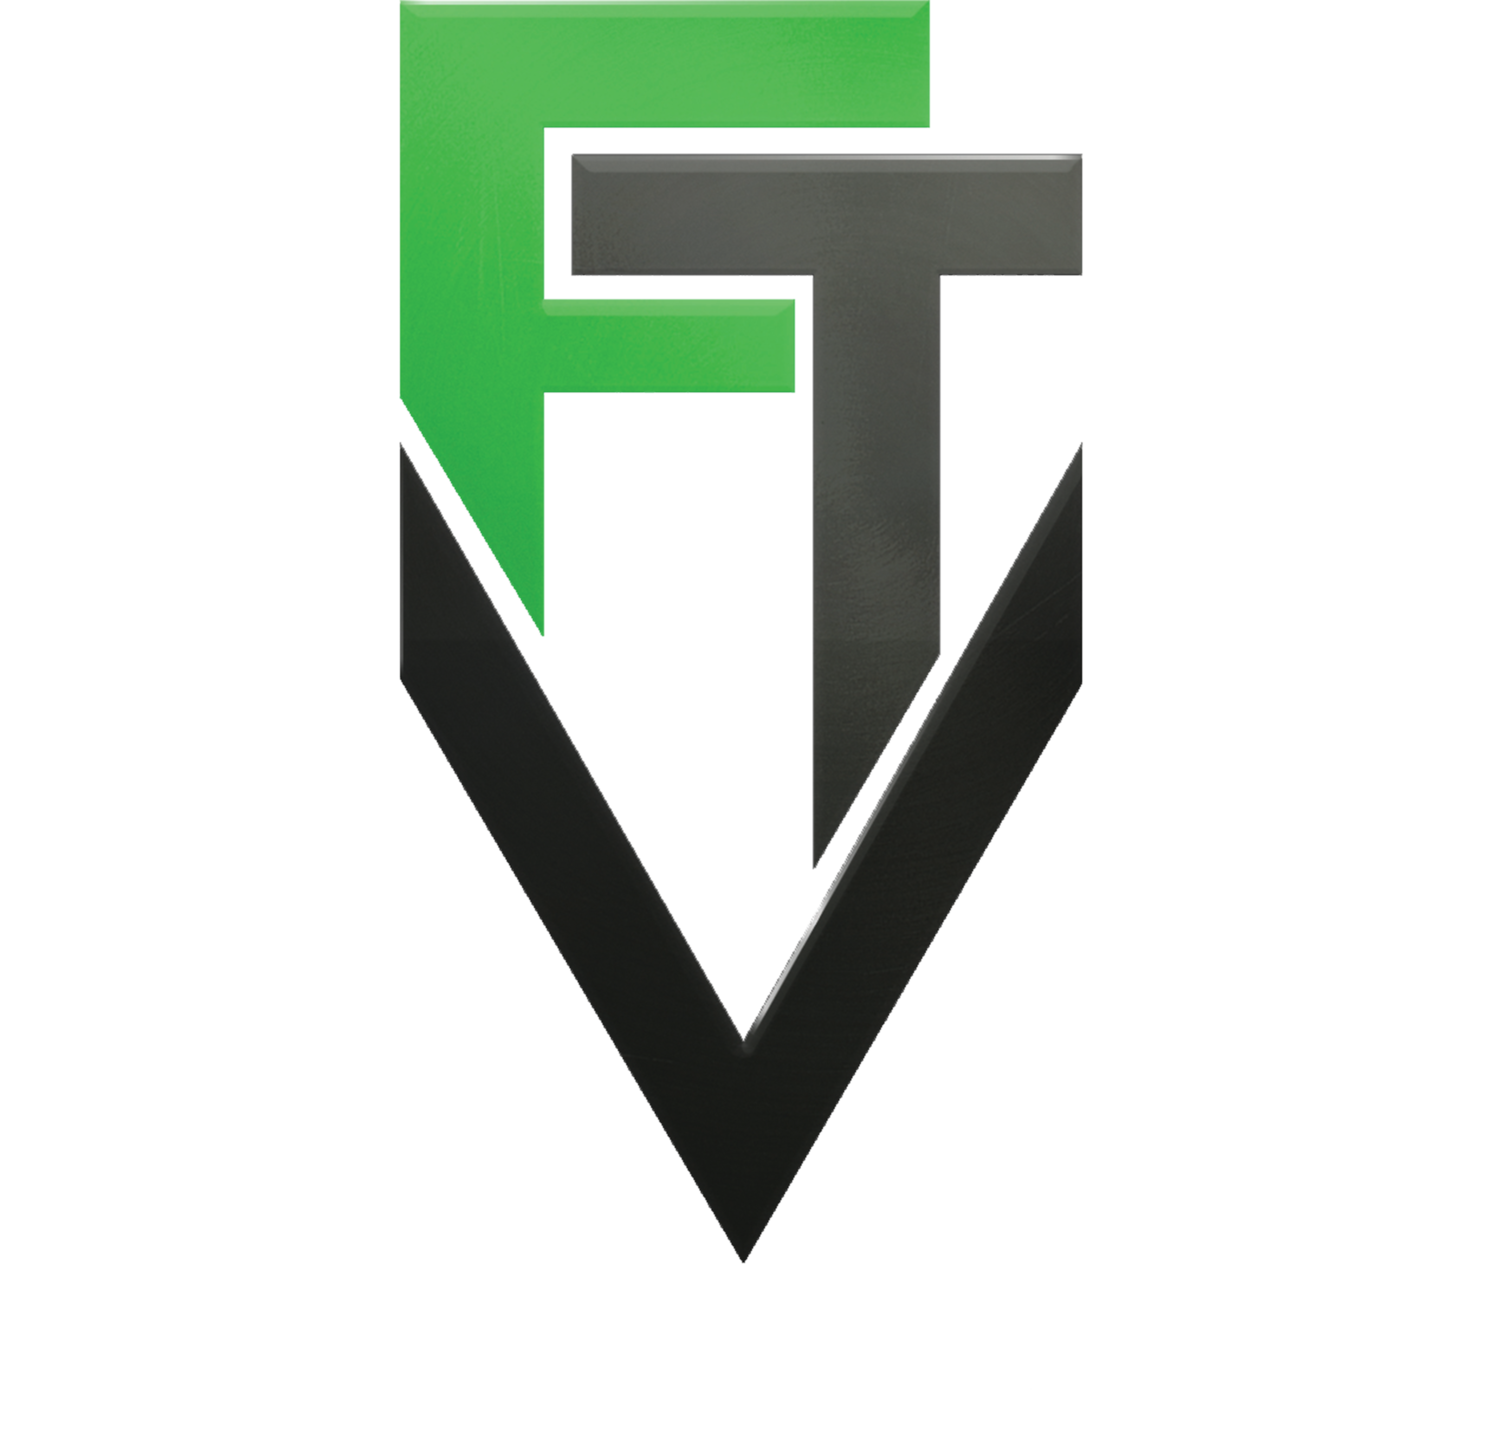 Focustech Ventures